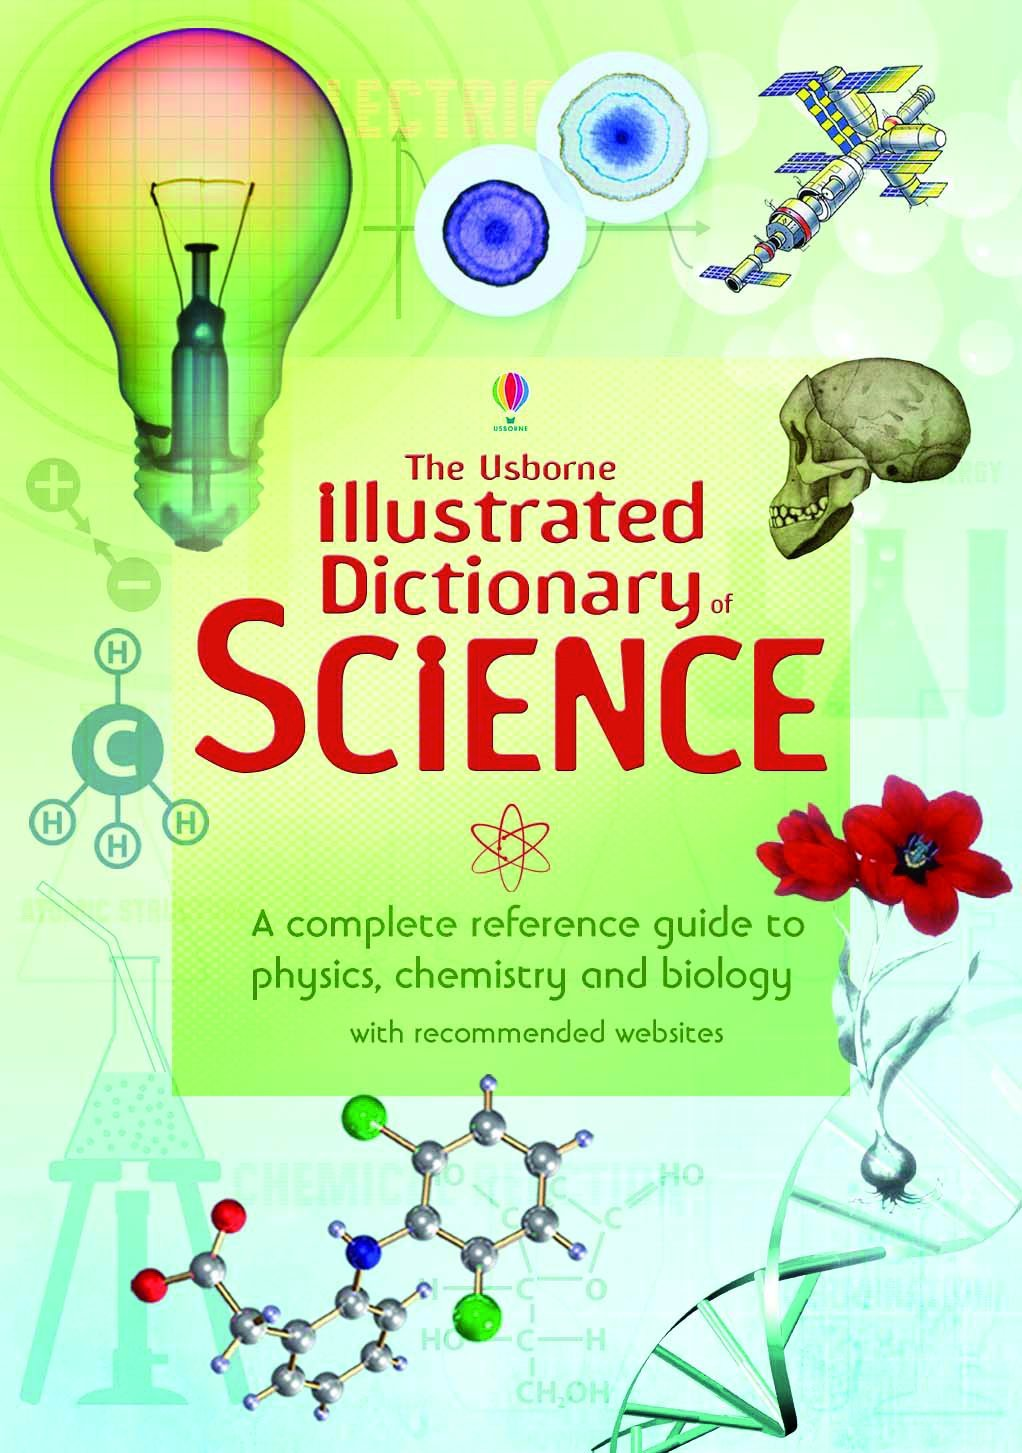 The Usborne Illustrated Dictionary of Science. (Illustrated dictionaries)